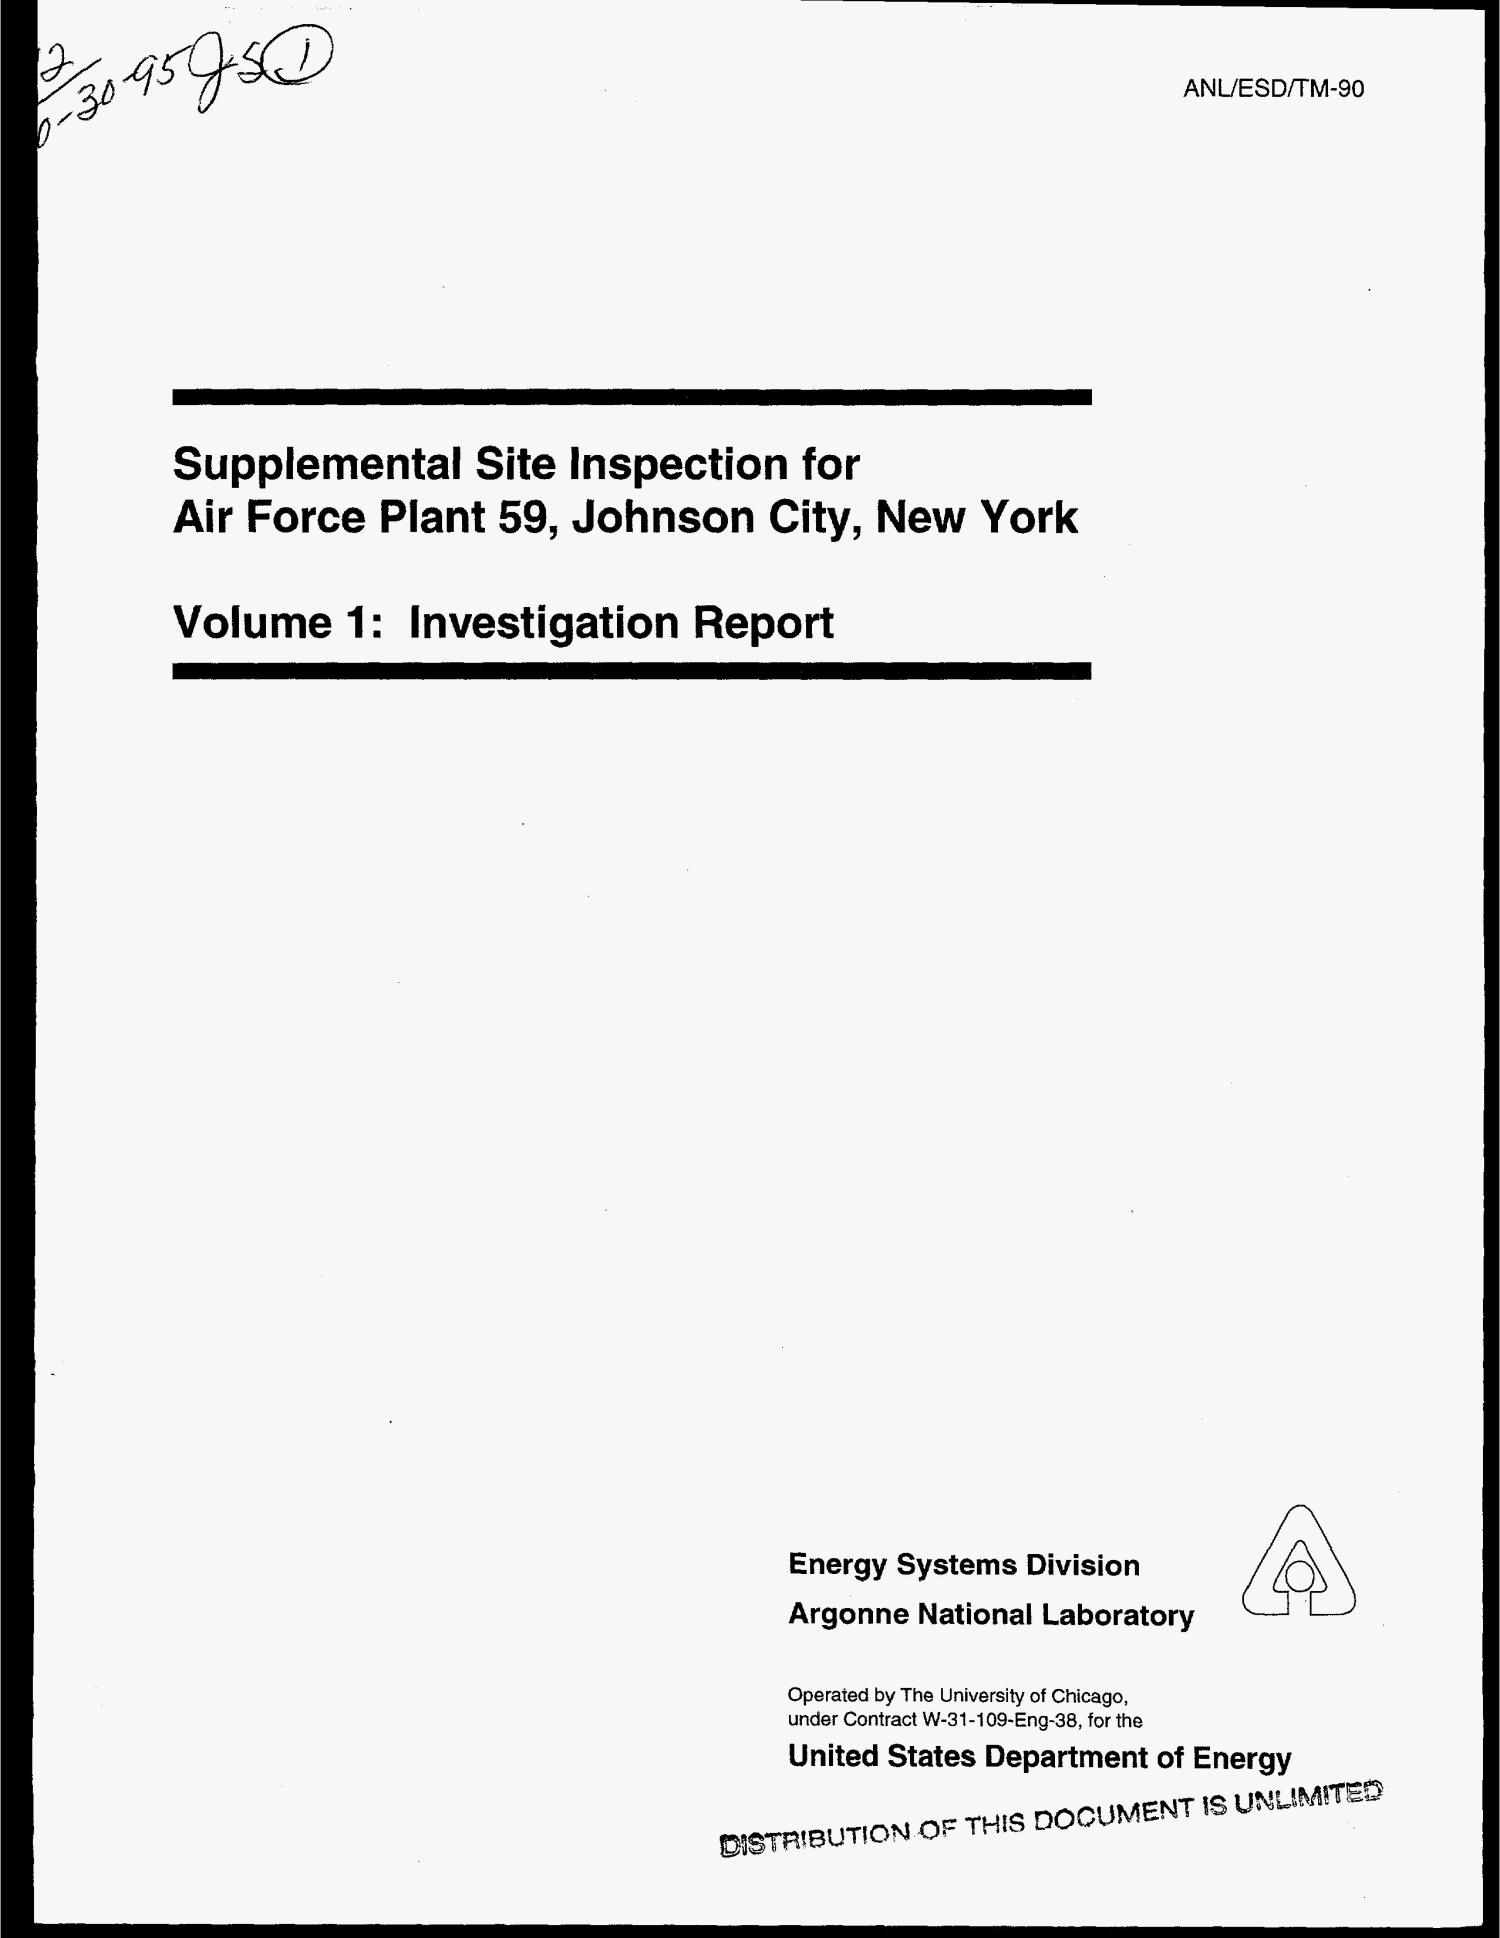 Supplemental site inspection for Air Force Plant 59, Johnson City, New York, Volume 1: Investigation report                                                                                                      [Sequence #]: 1 of 269